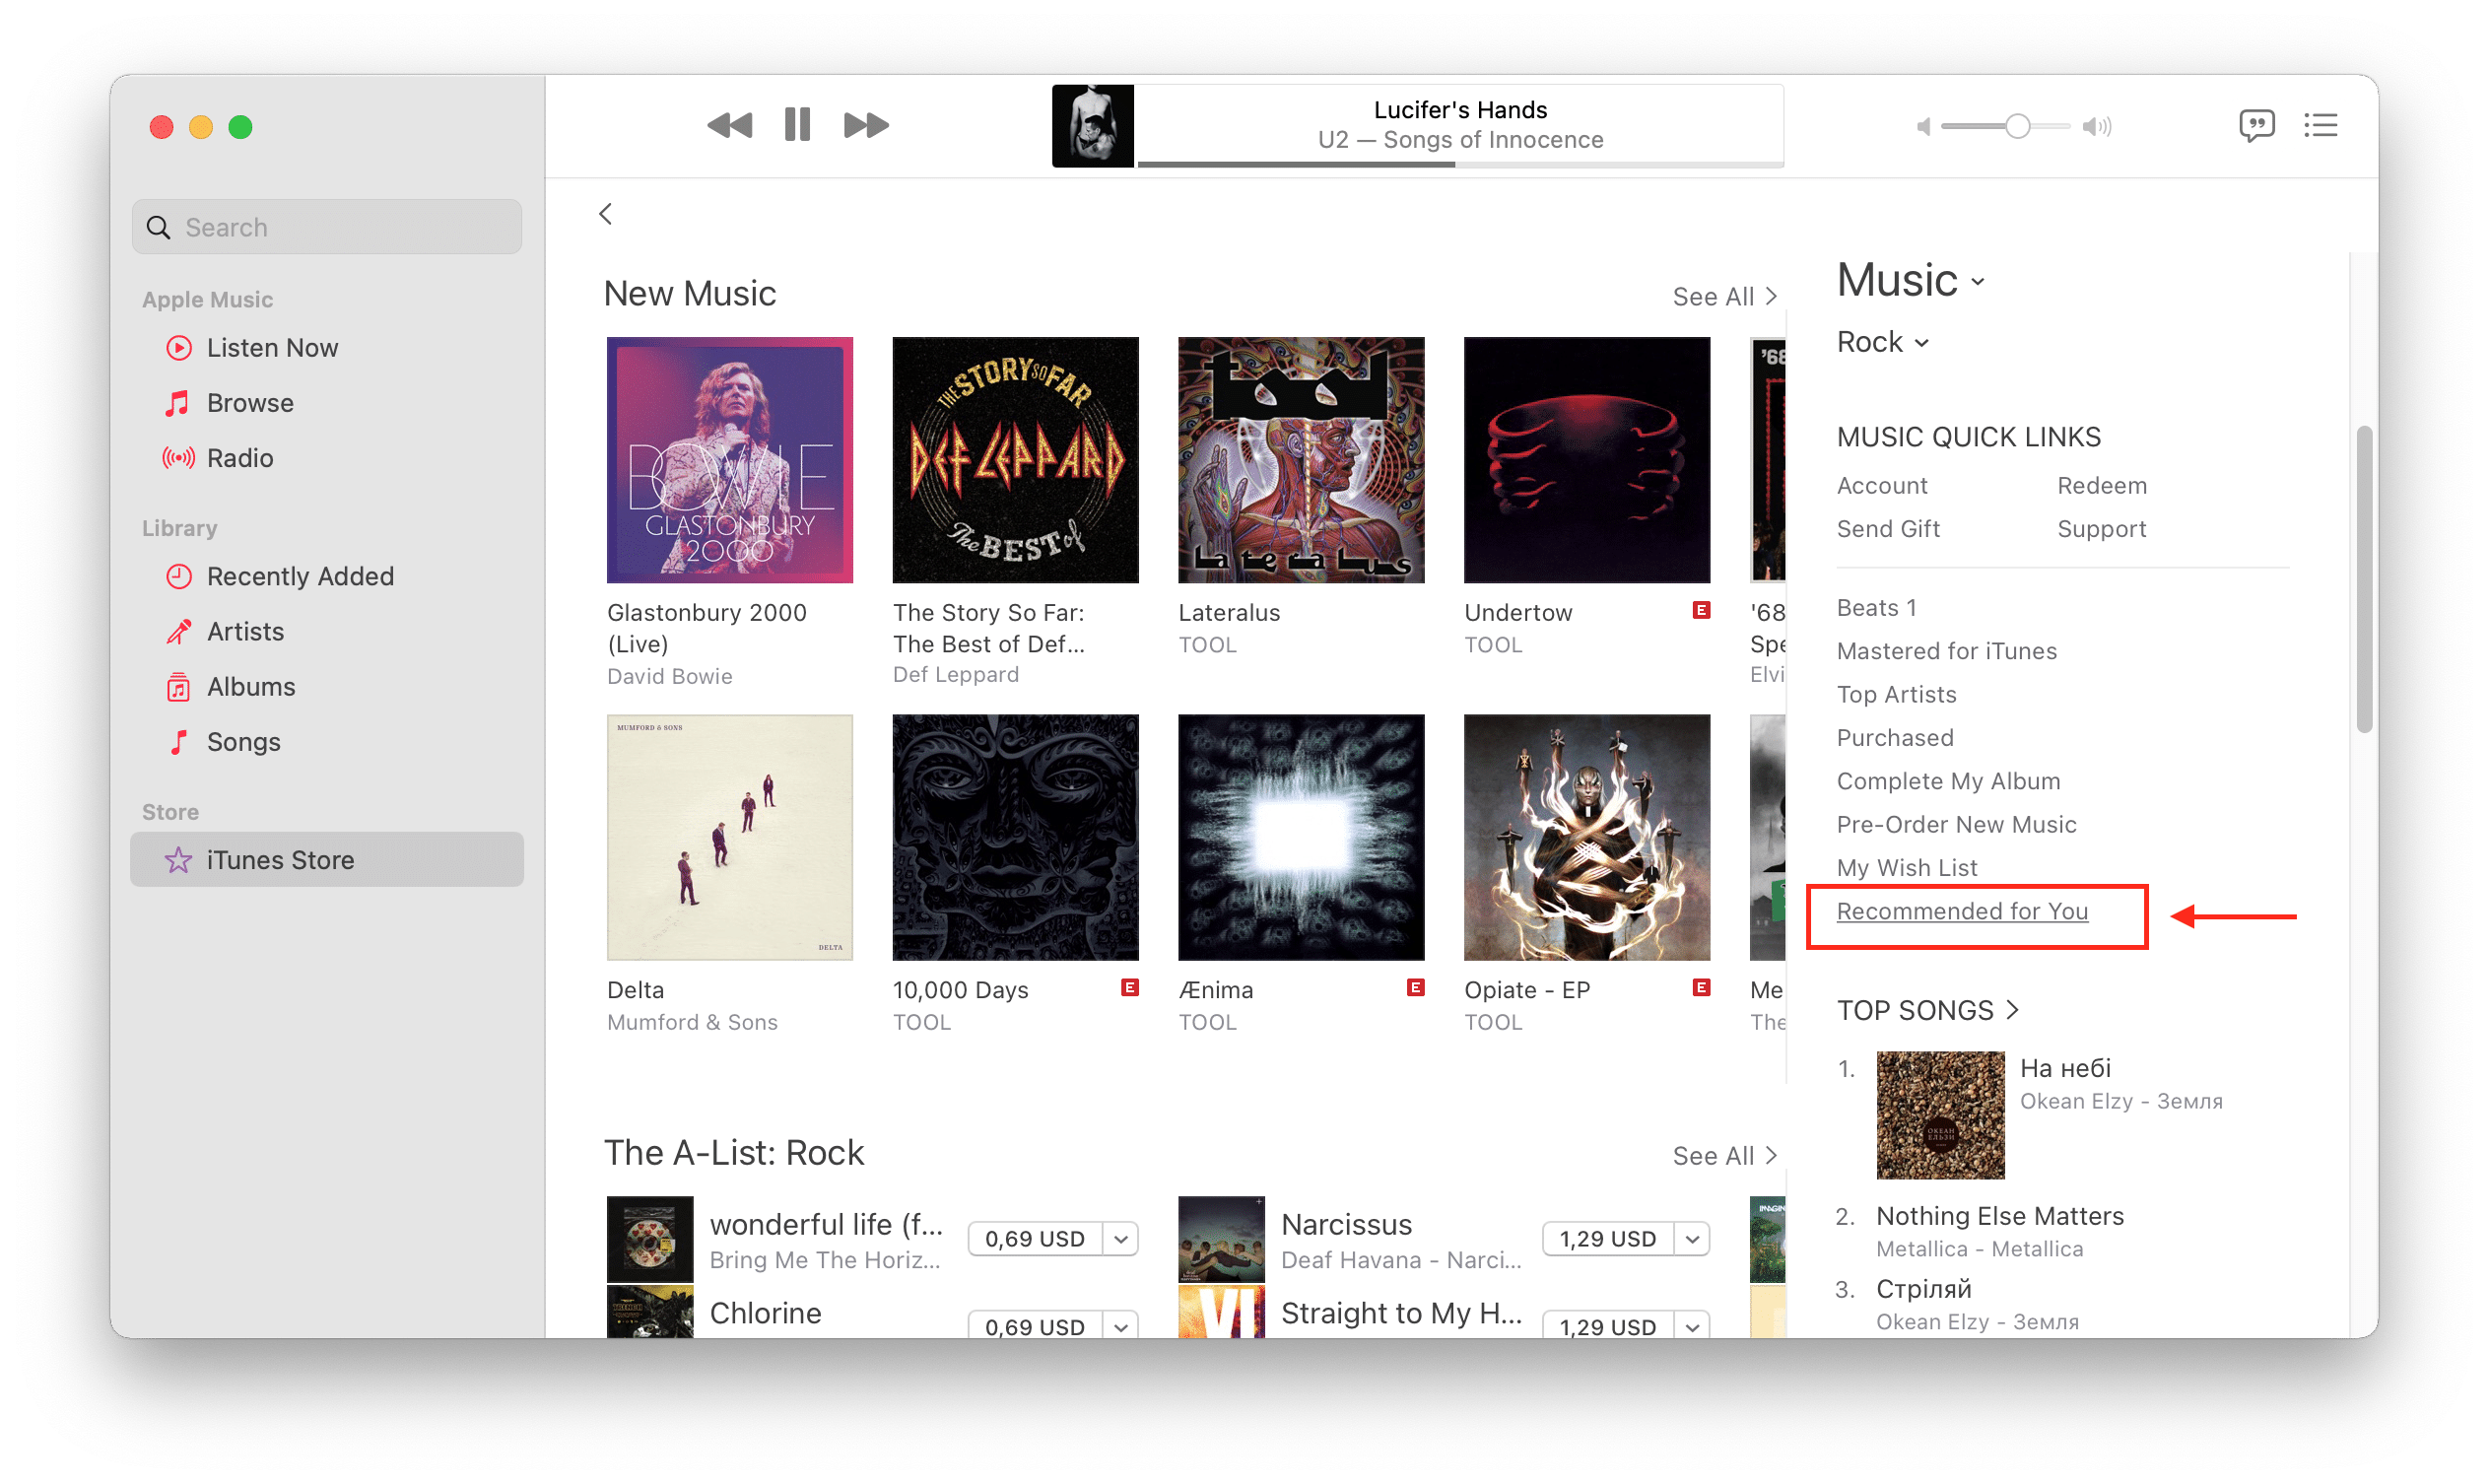 iTunes store page in the Music app